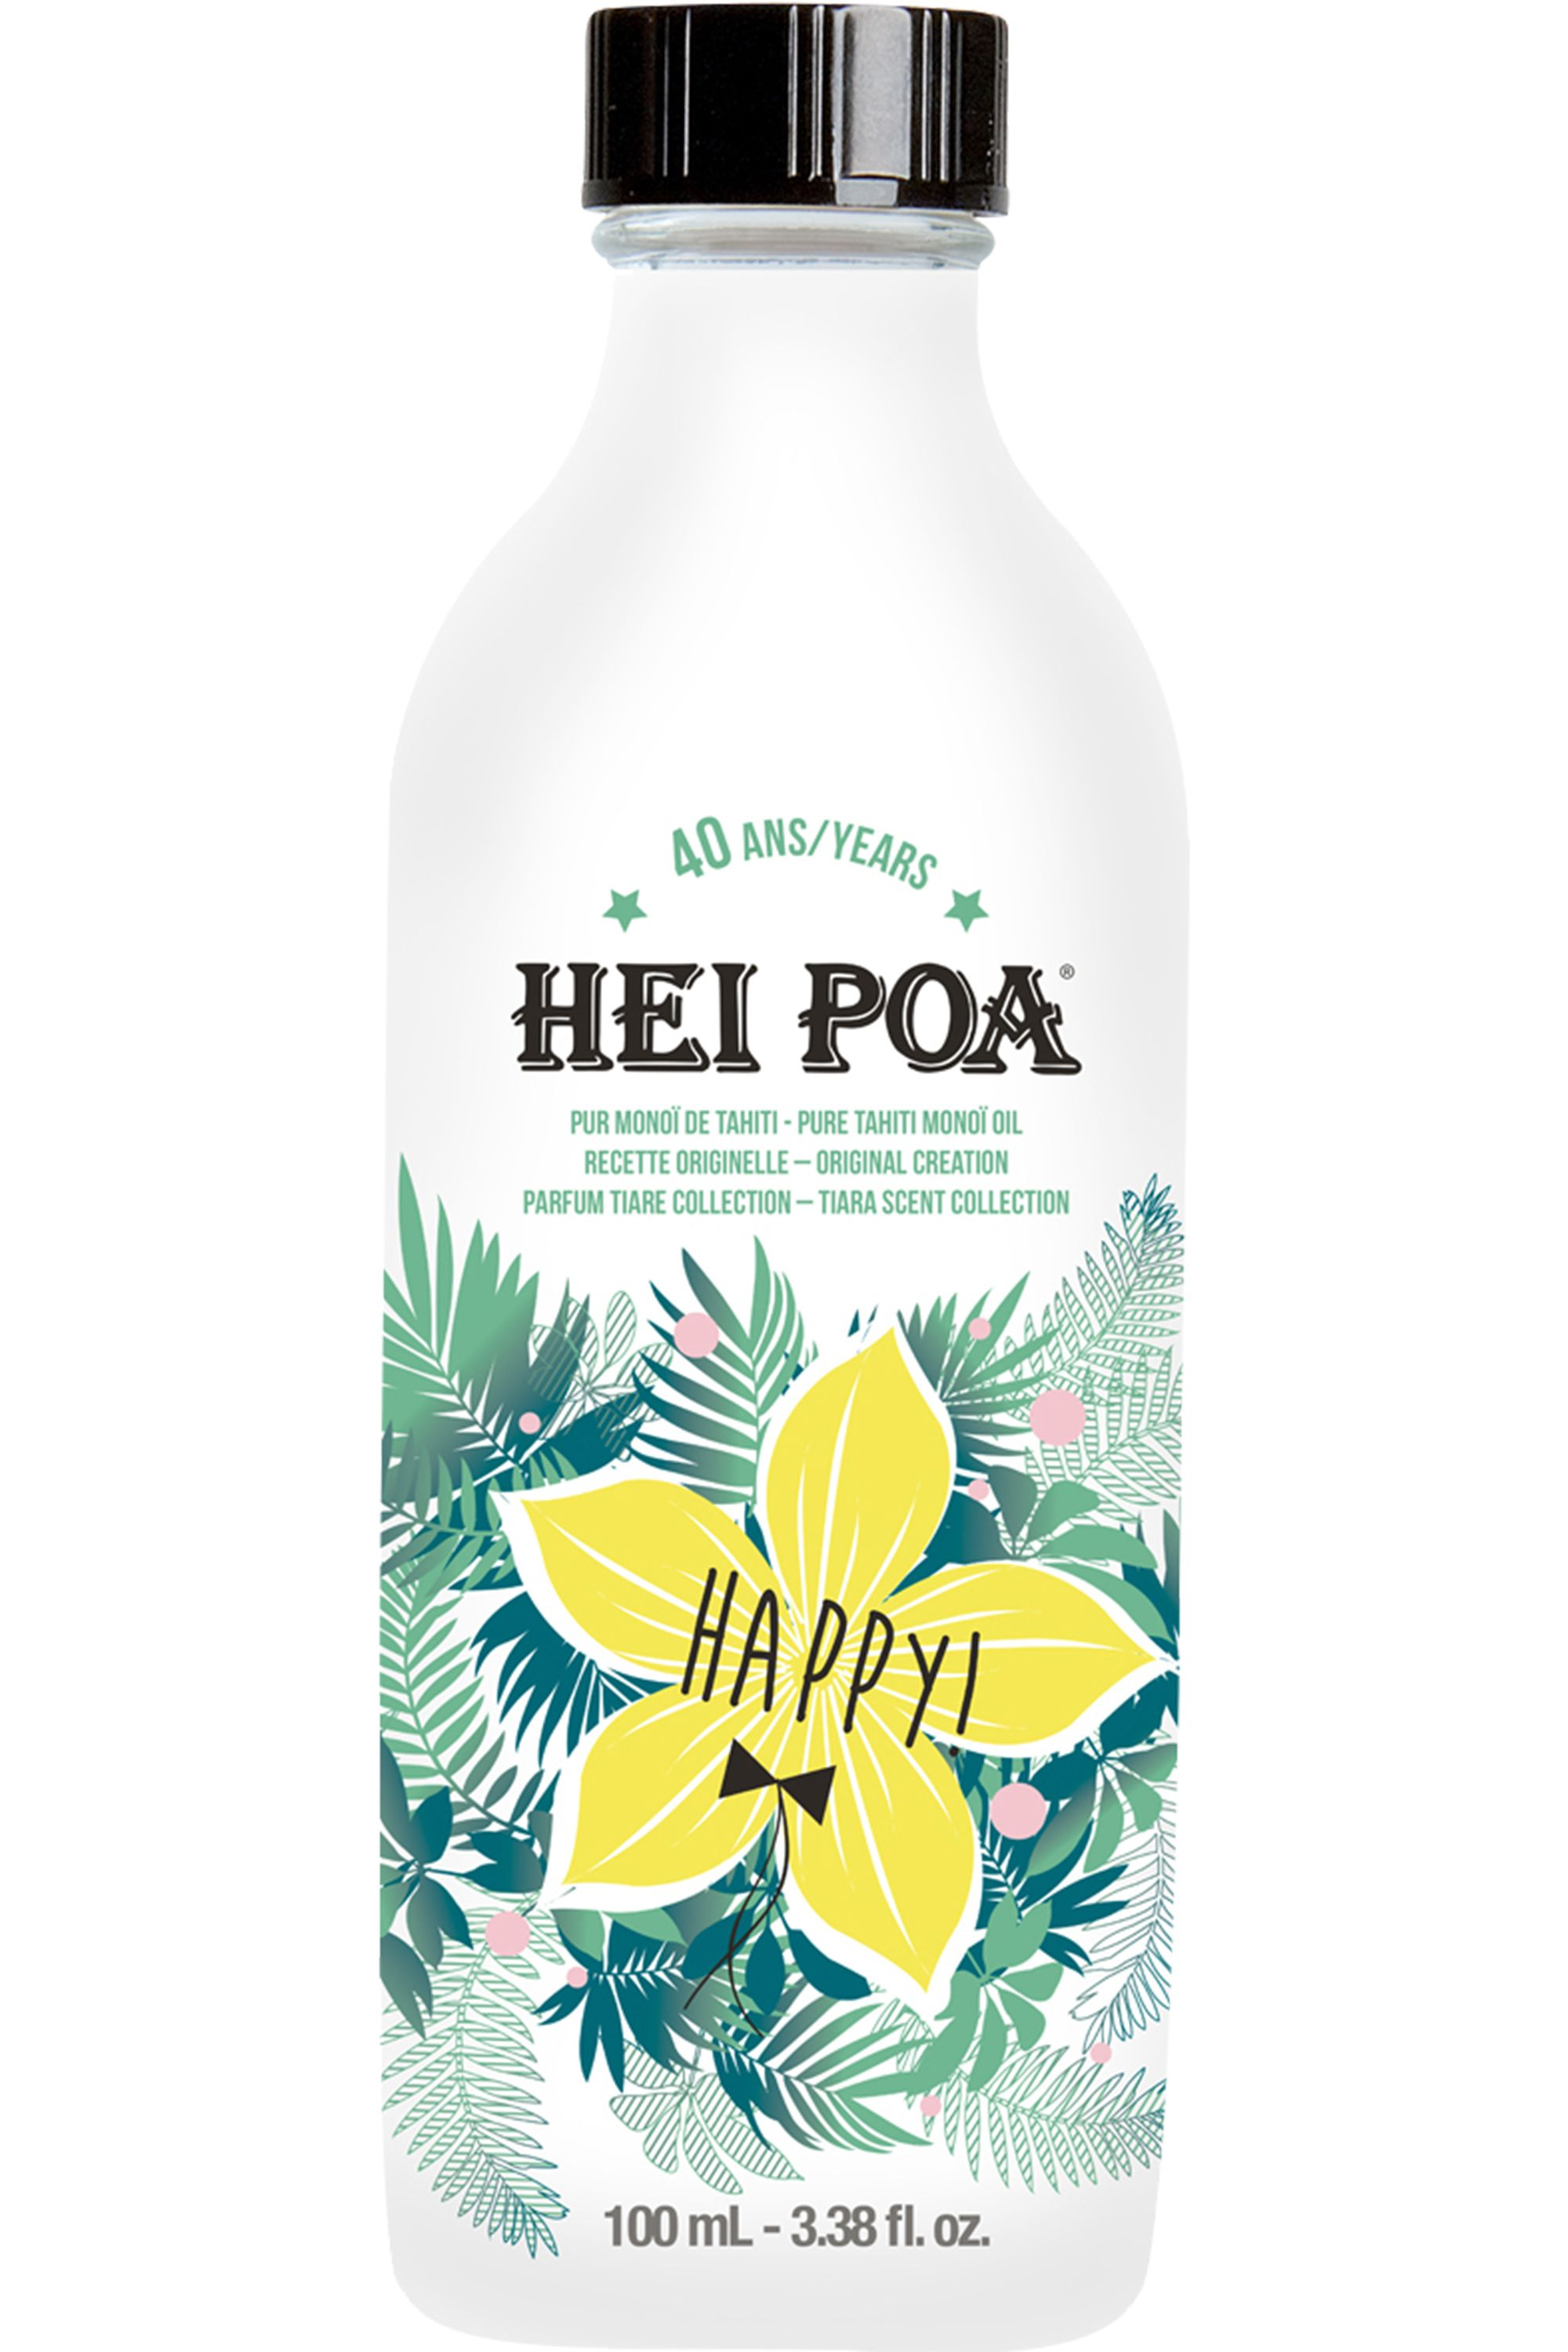 Blissim : Hei Poa - Pur Monoï Happy - Pur Monoï Happy